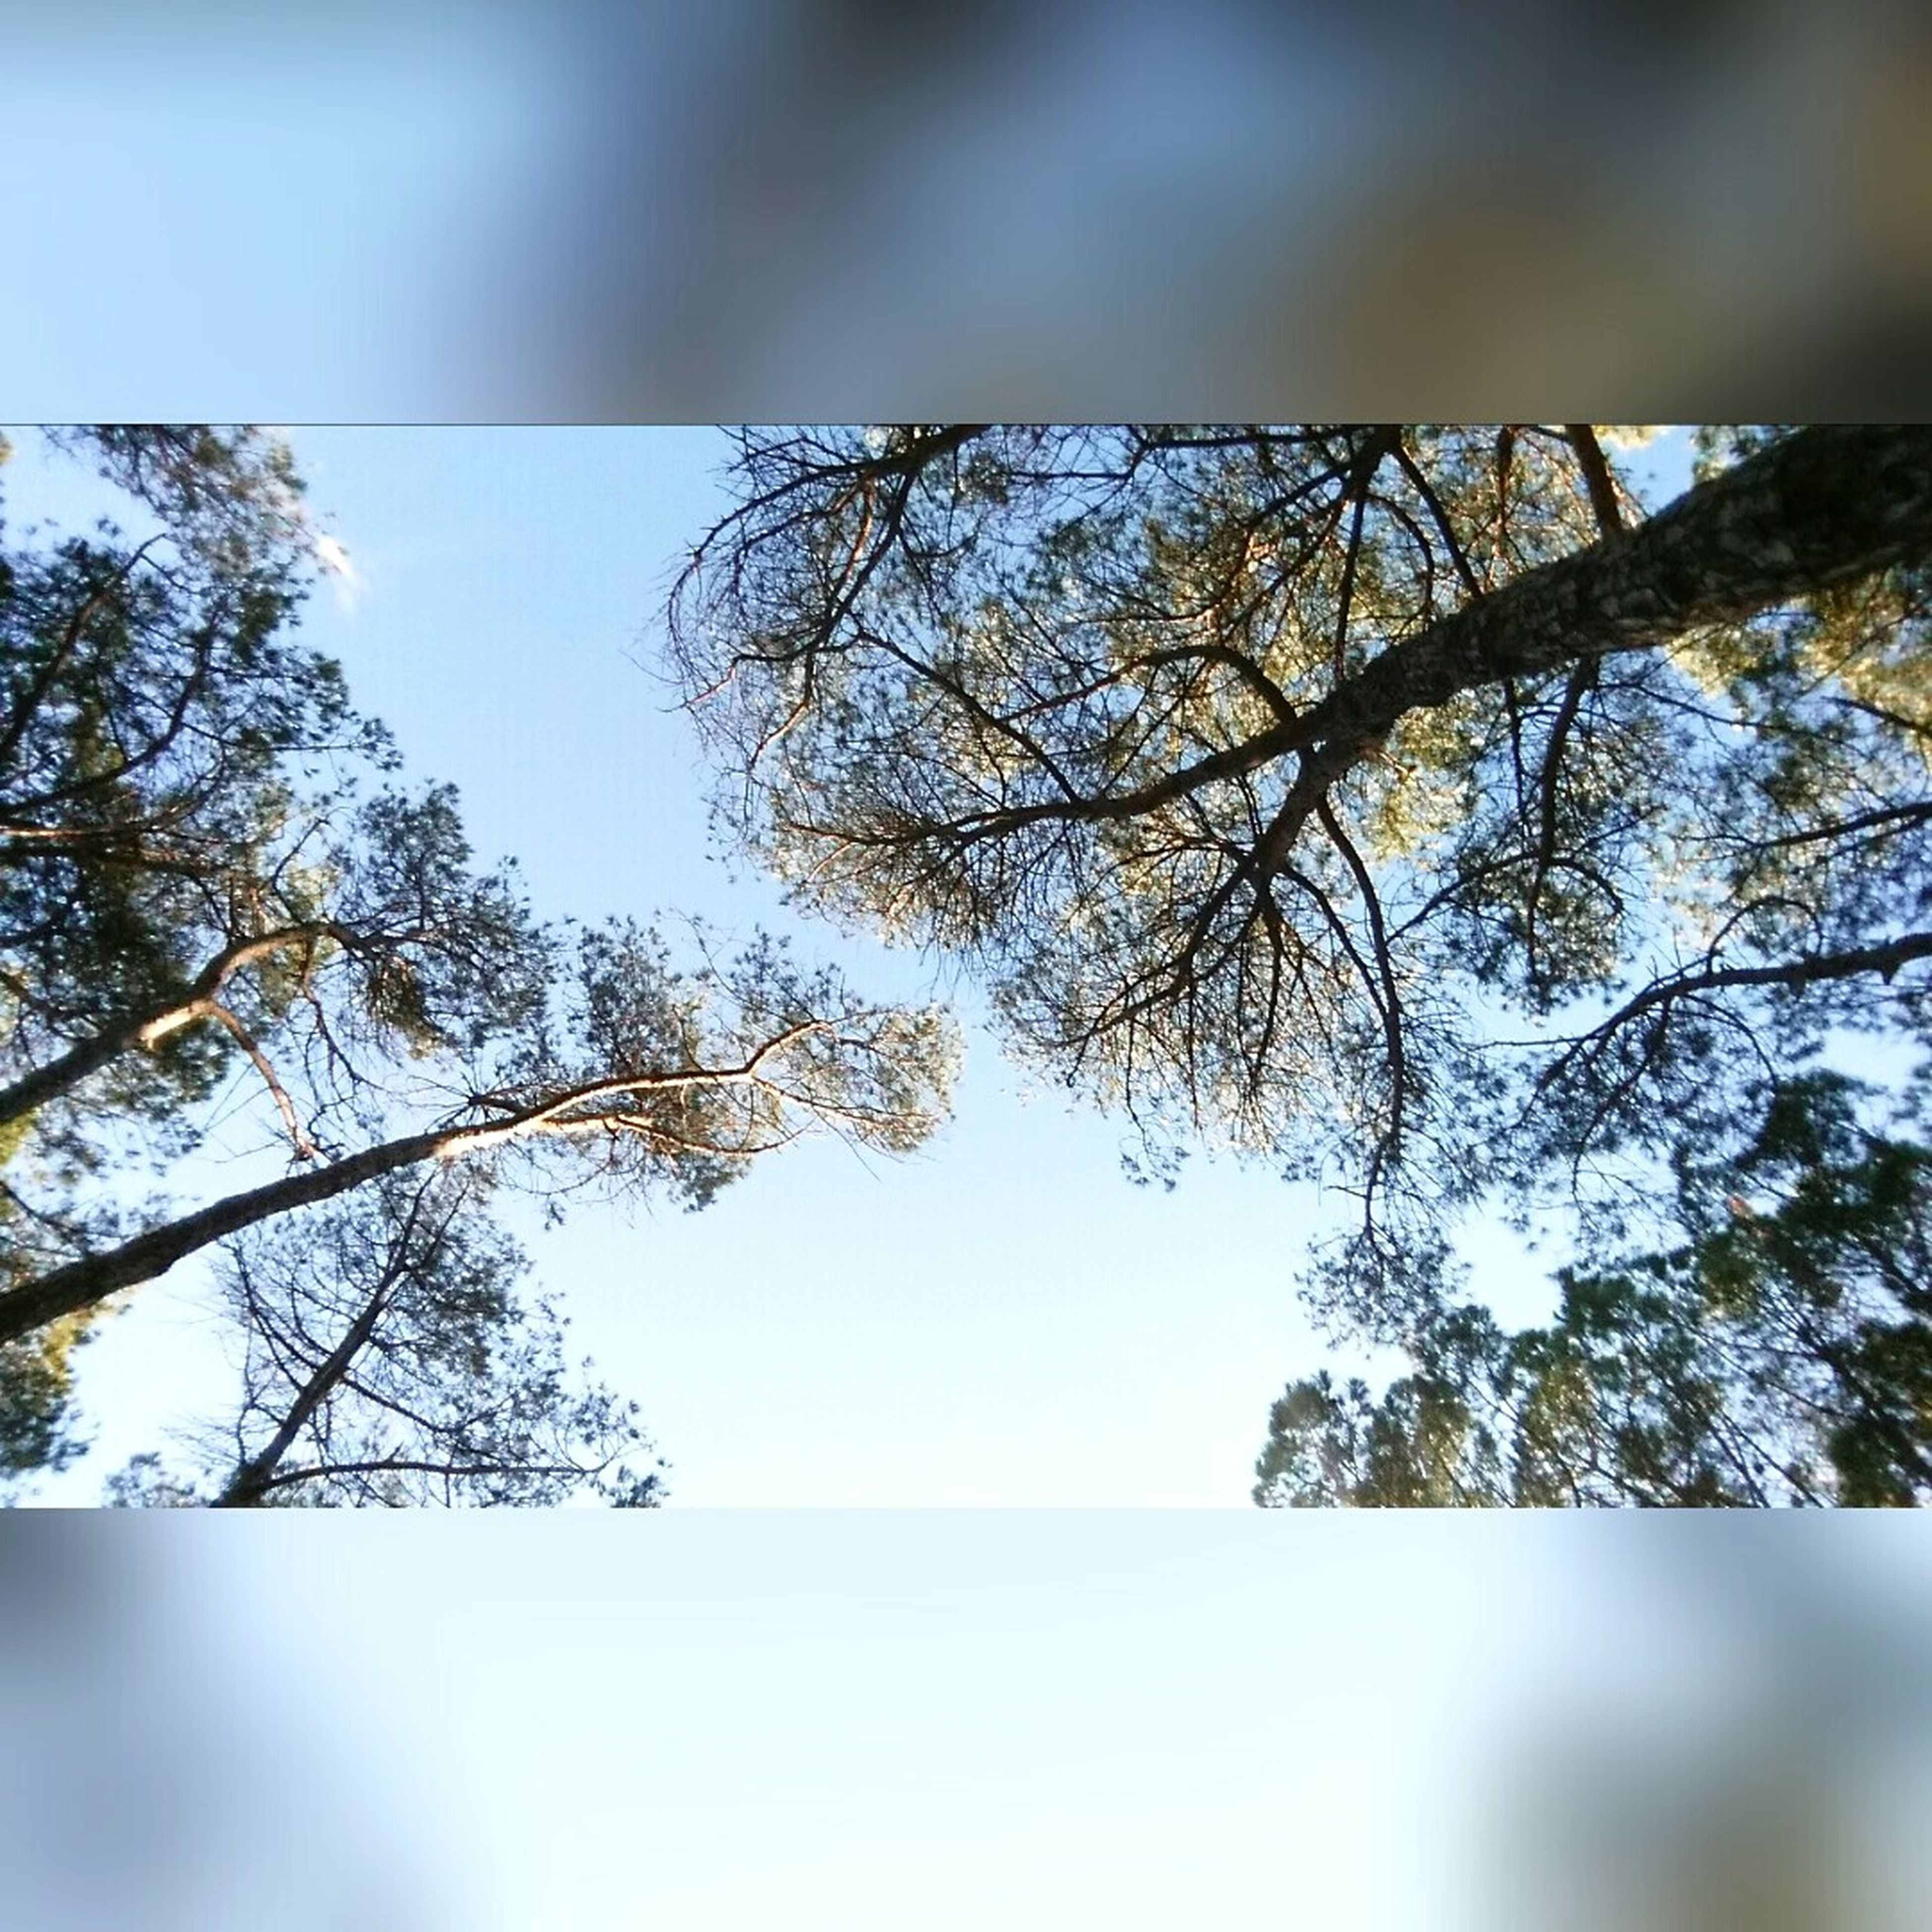 tree, sky, nature, no people, beauty in nature, outdoors, clear sky, scenics, branch, day, water, close-up